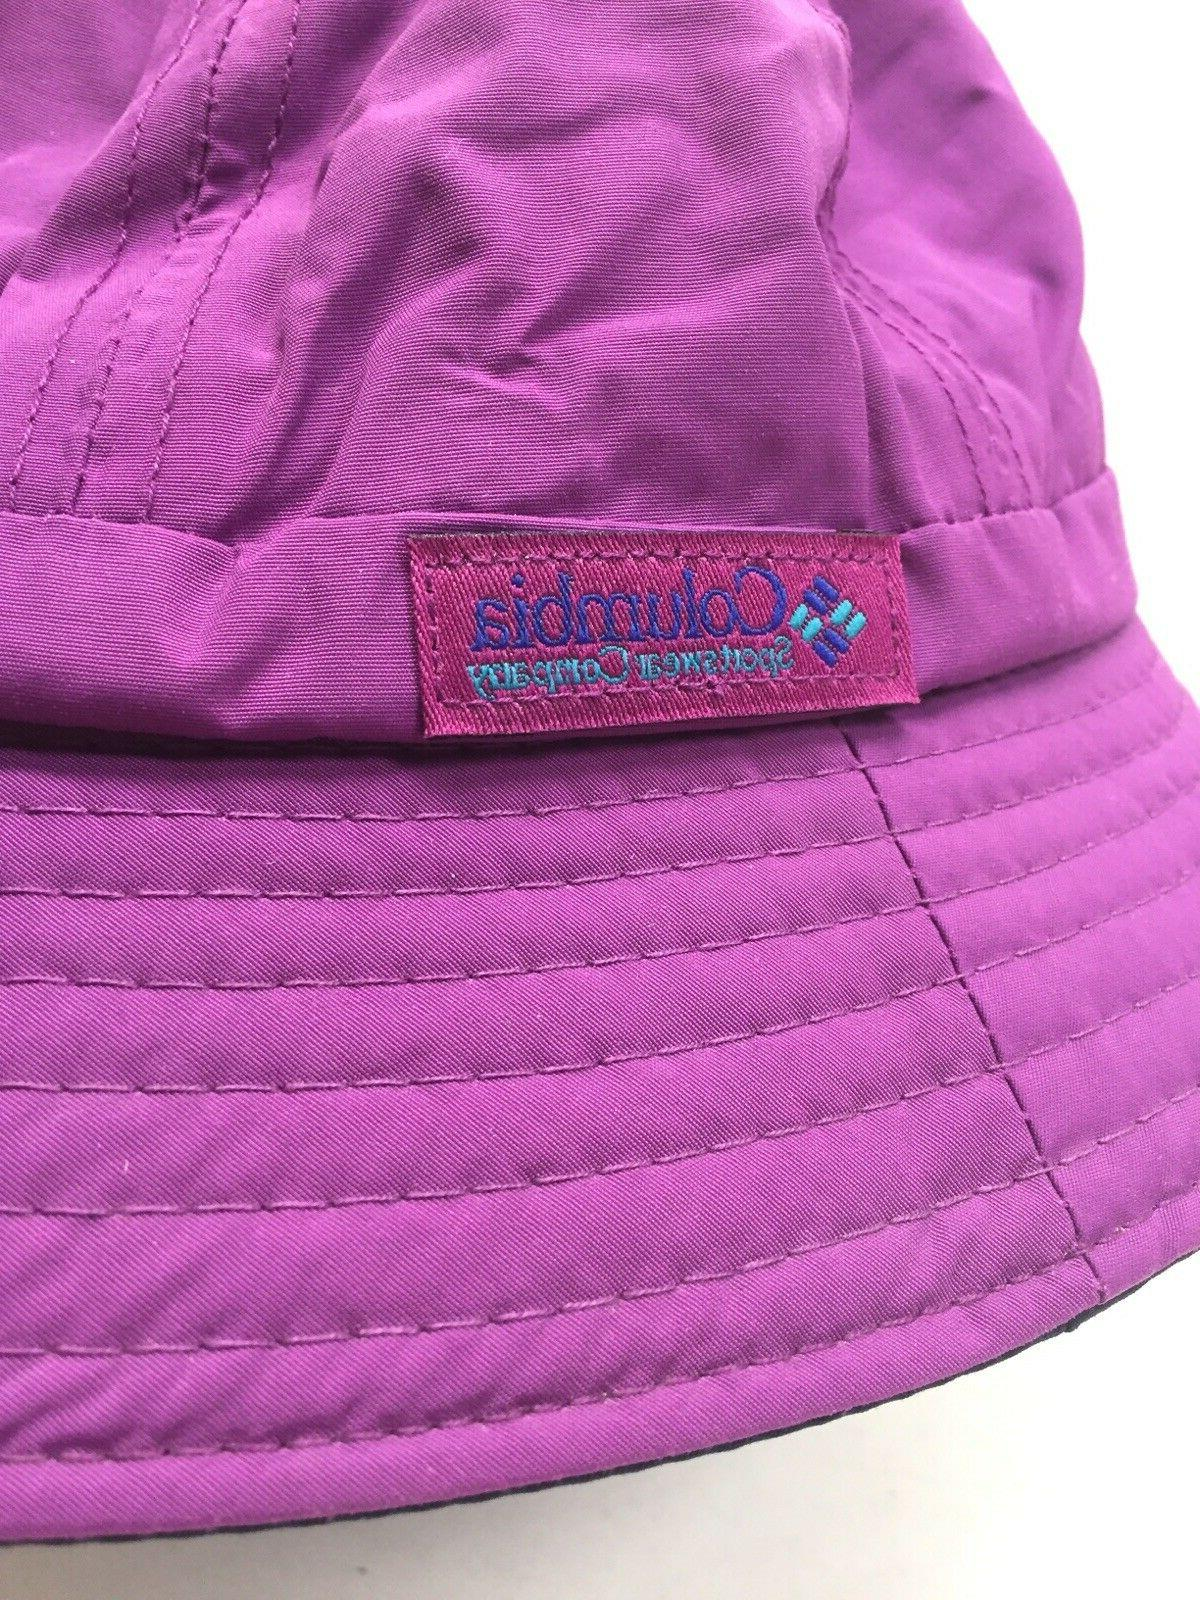 NWT Columbia Fishing Waterproof Bucket Cap Hiking ORCHID